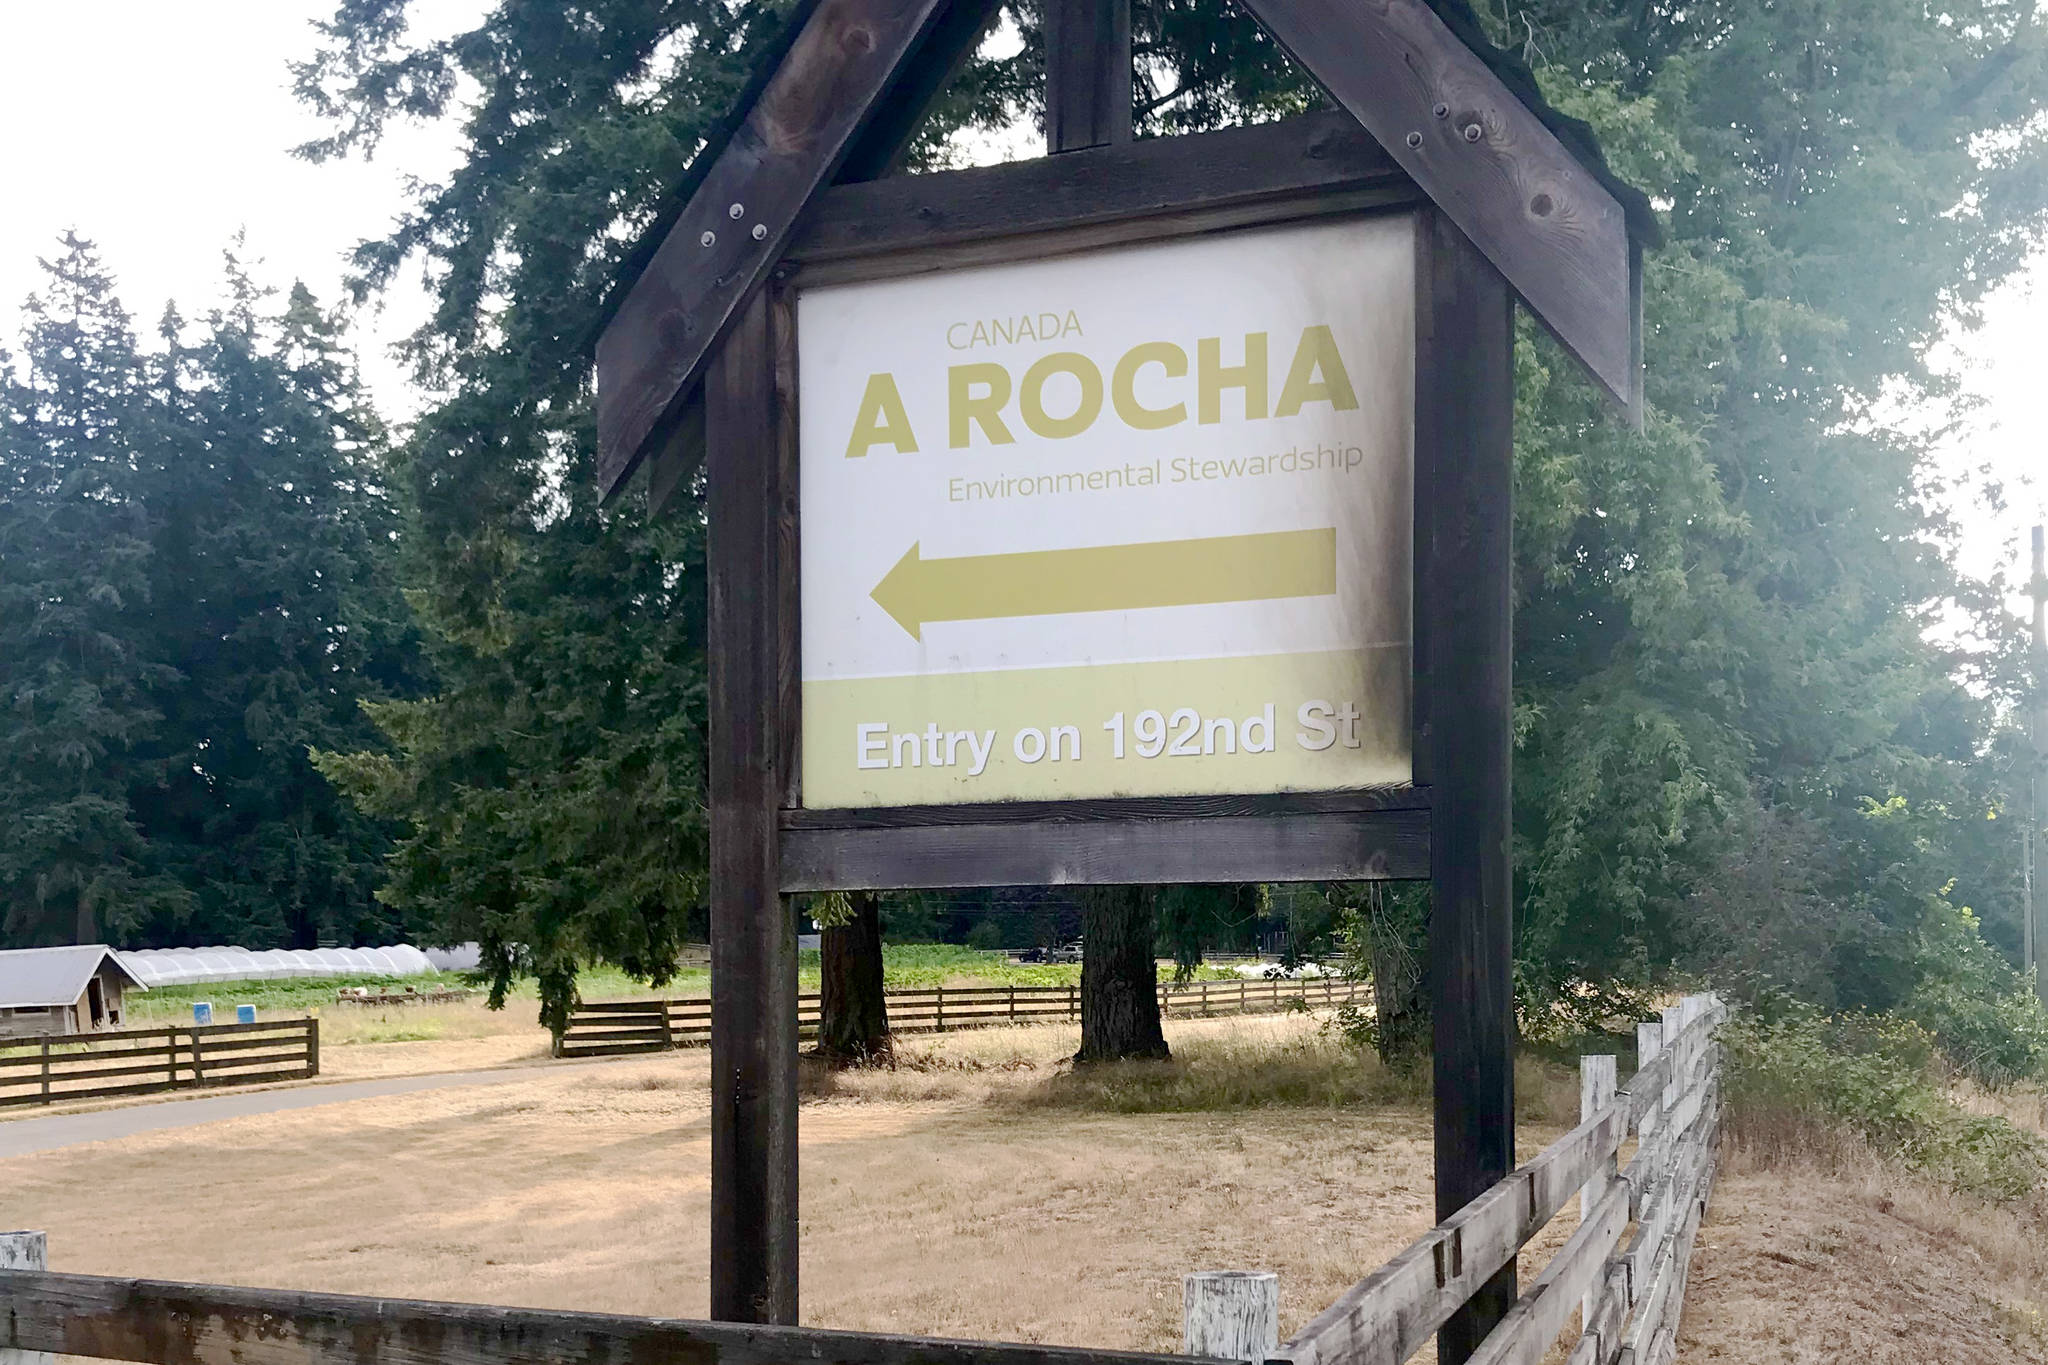 A sign pointing towards the main A Rocha driveway was set on fire early Saturday (July 17, 2021). (Contributed photo)